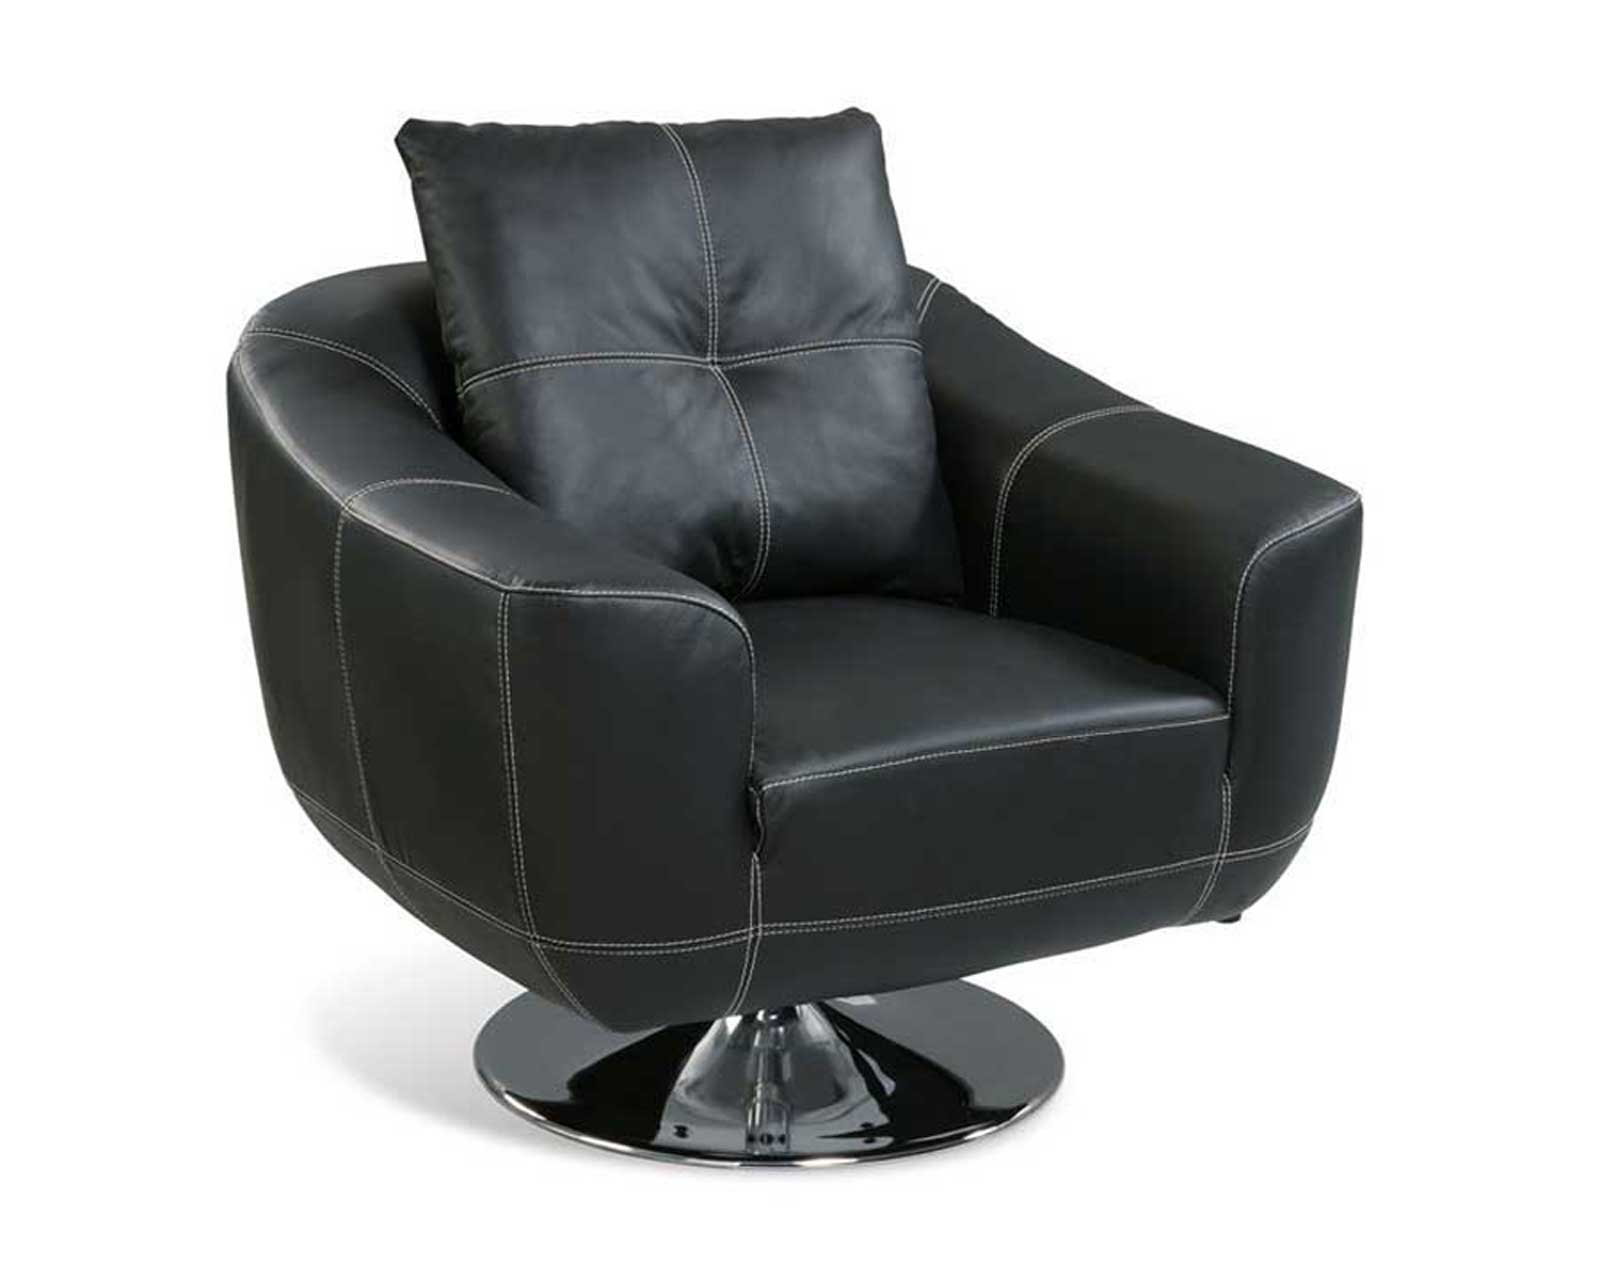 Black Italian Leather Swivel Chairs with White Stitching